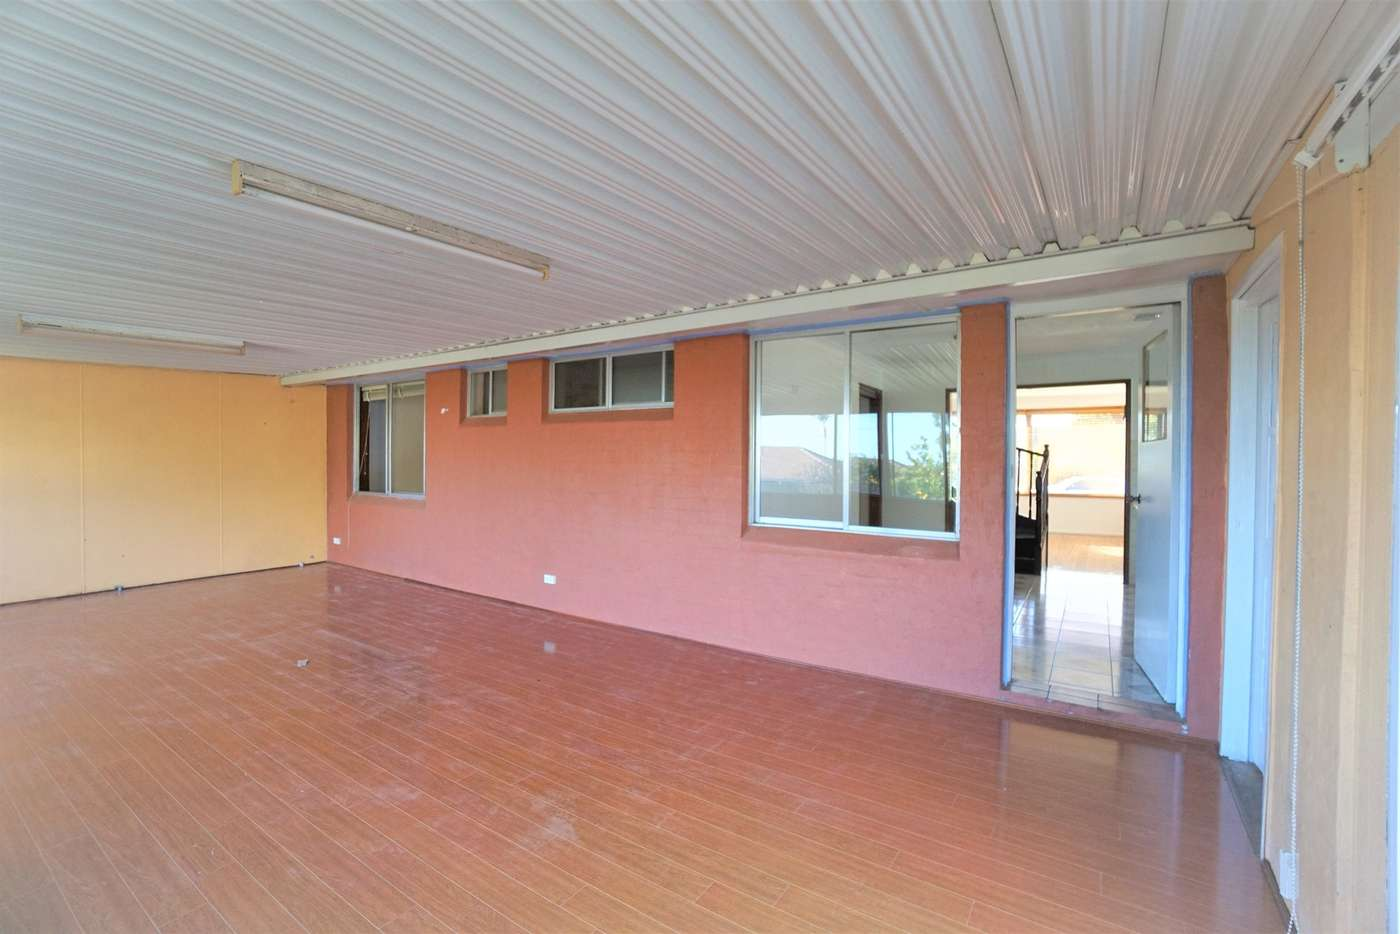 Seventh view of Homely house listing, 6 Malvern Avenue, Baulkham Hills NSW 2153